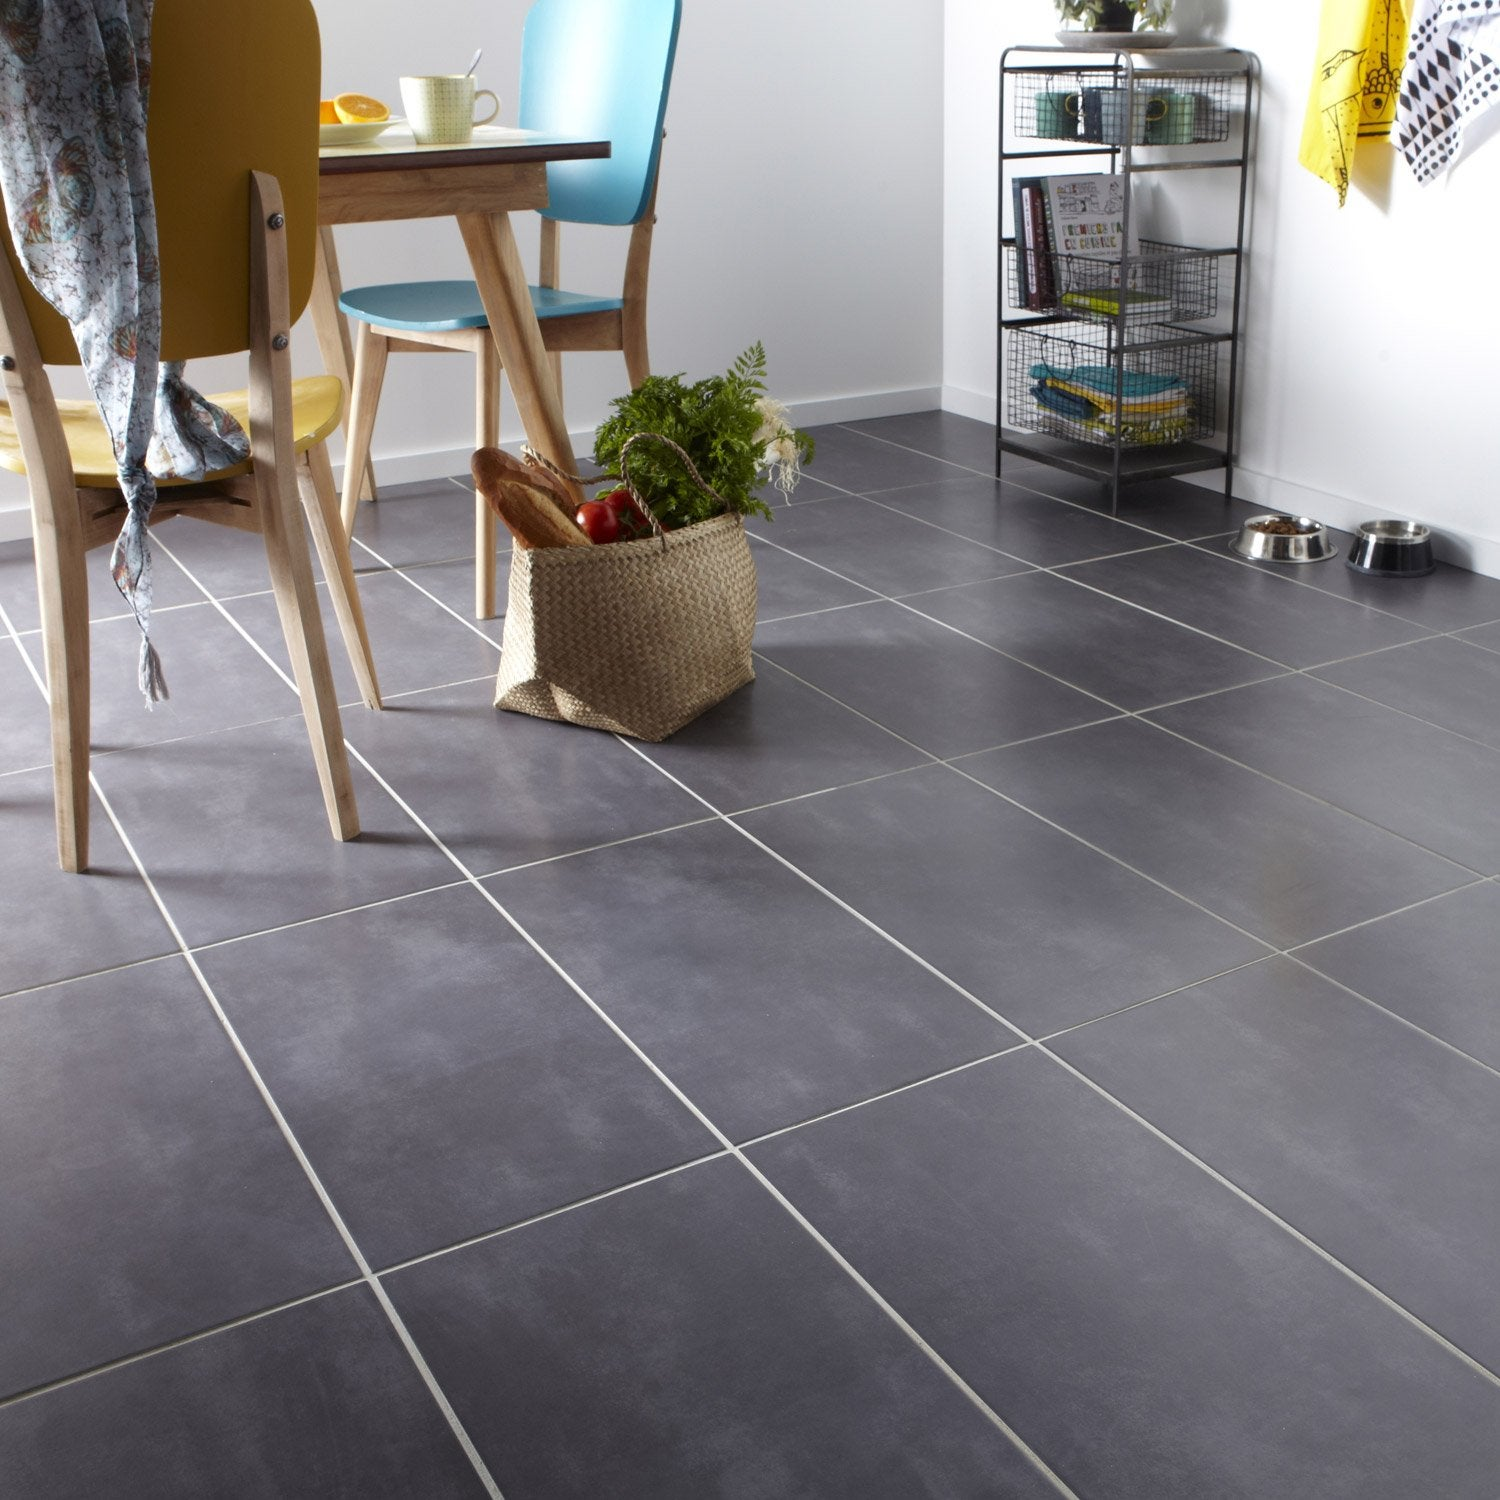 Carrelage sol et mur anthracite effet b ton welcome x cm leroy merlin for Cuisine carrelage gris anthracite